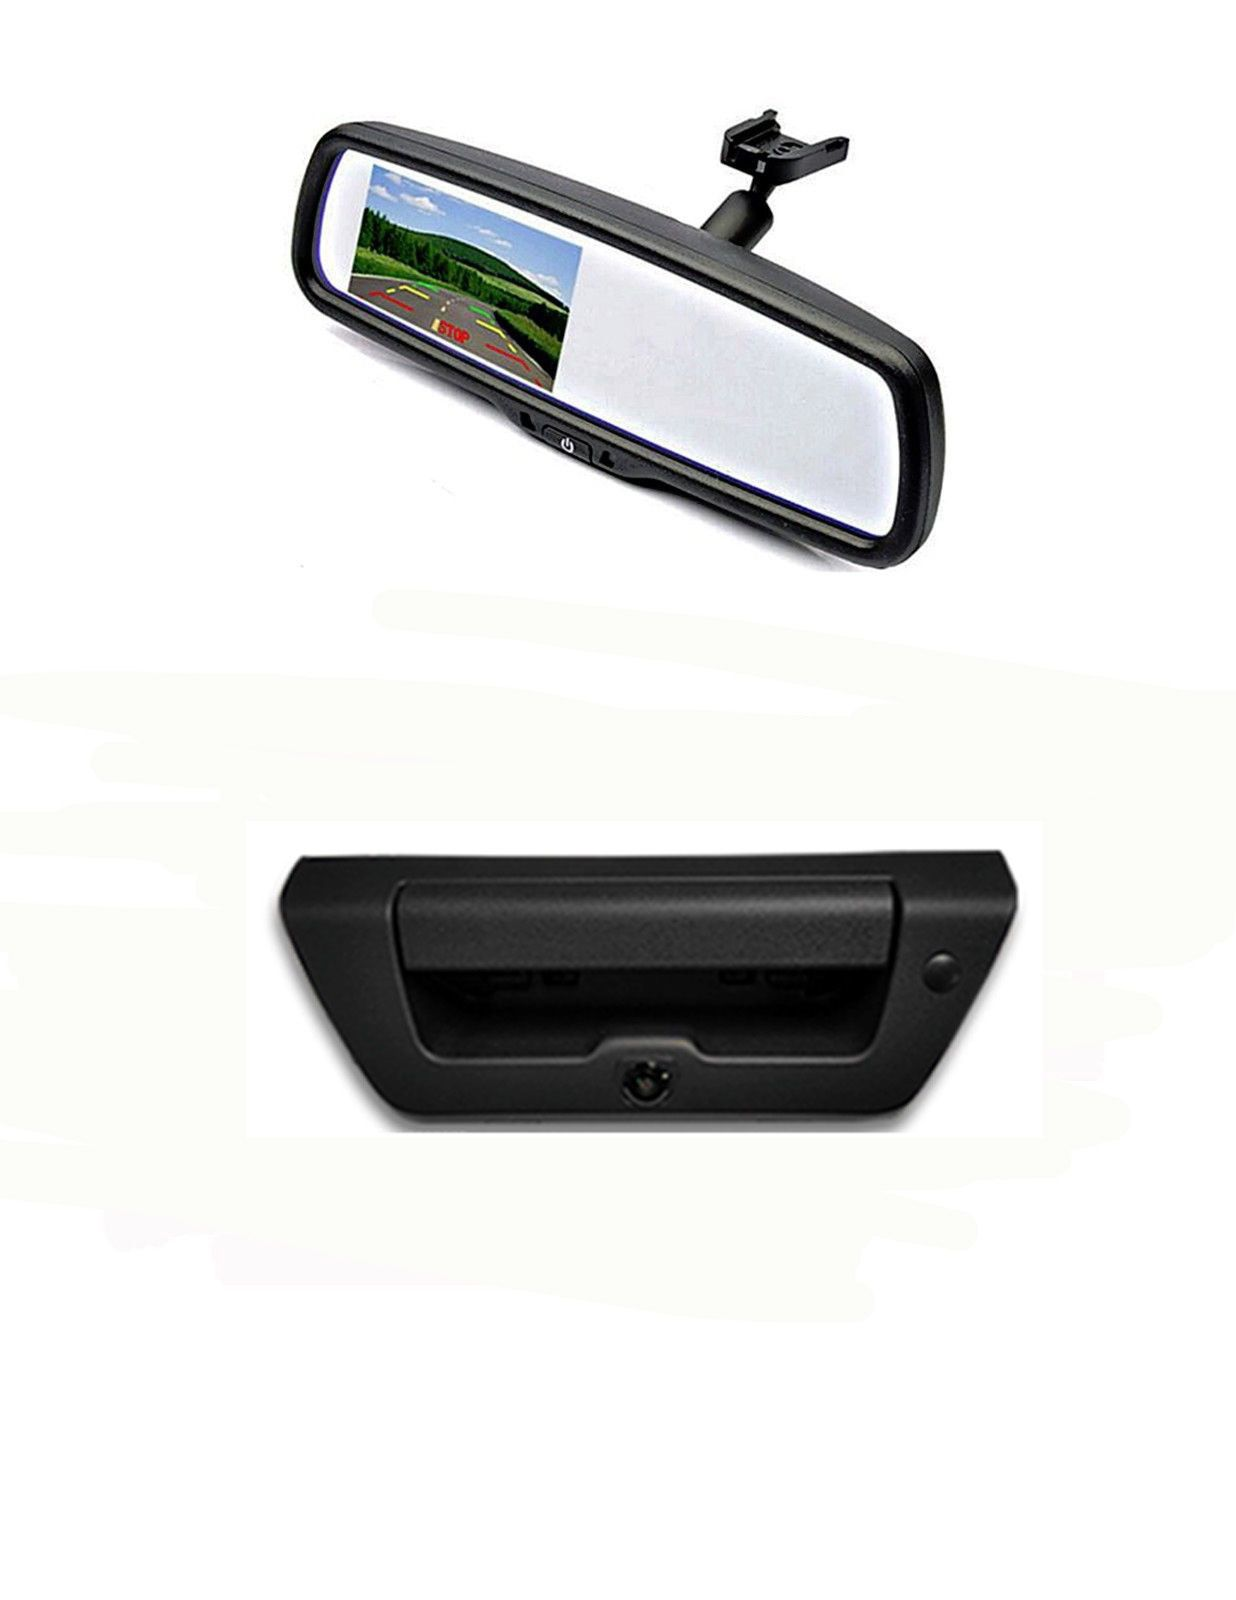 "TAILGATE BACKUP CAMERA & 4.3"" HD MIRROR MONITOR FOR 2015-2017 FORD F150 TRUCKS"